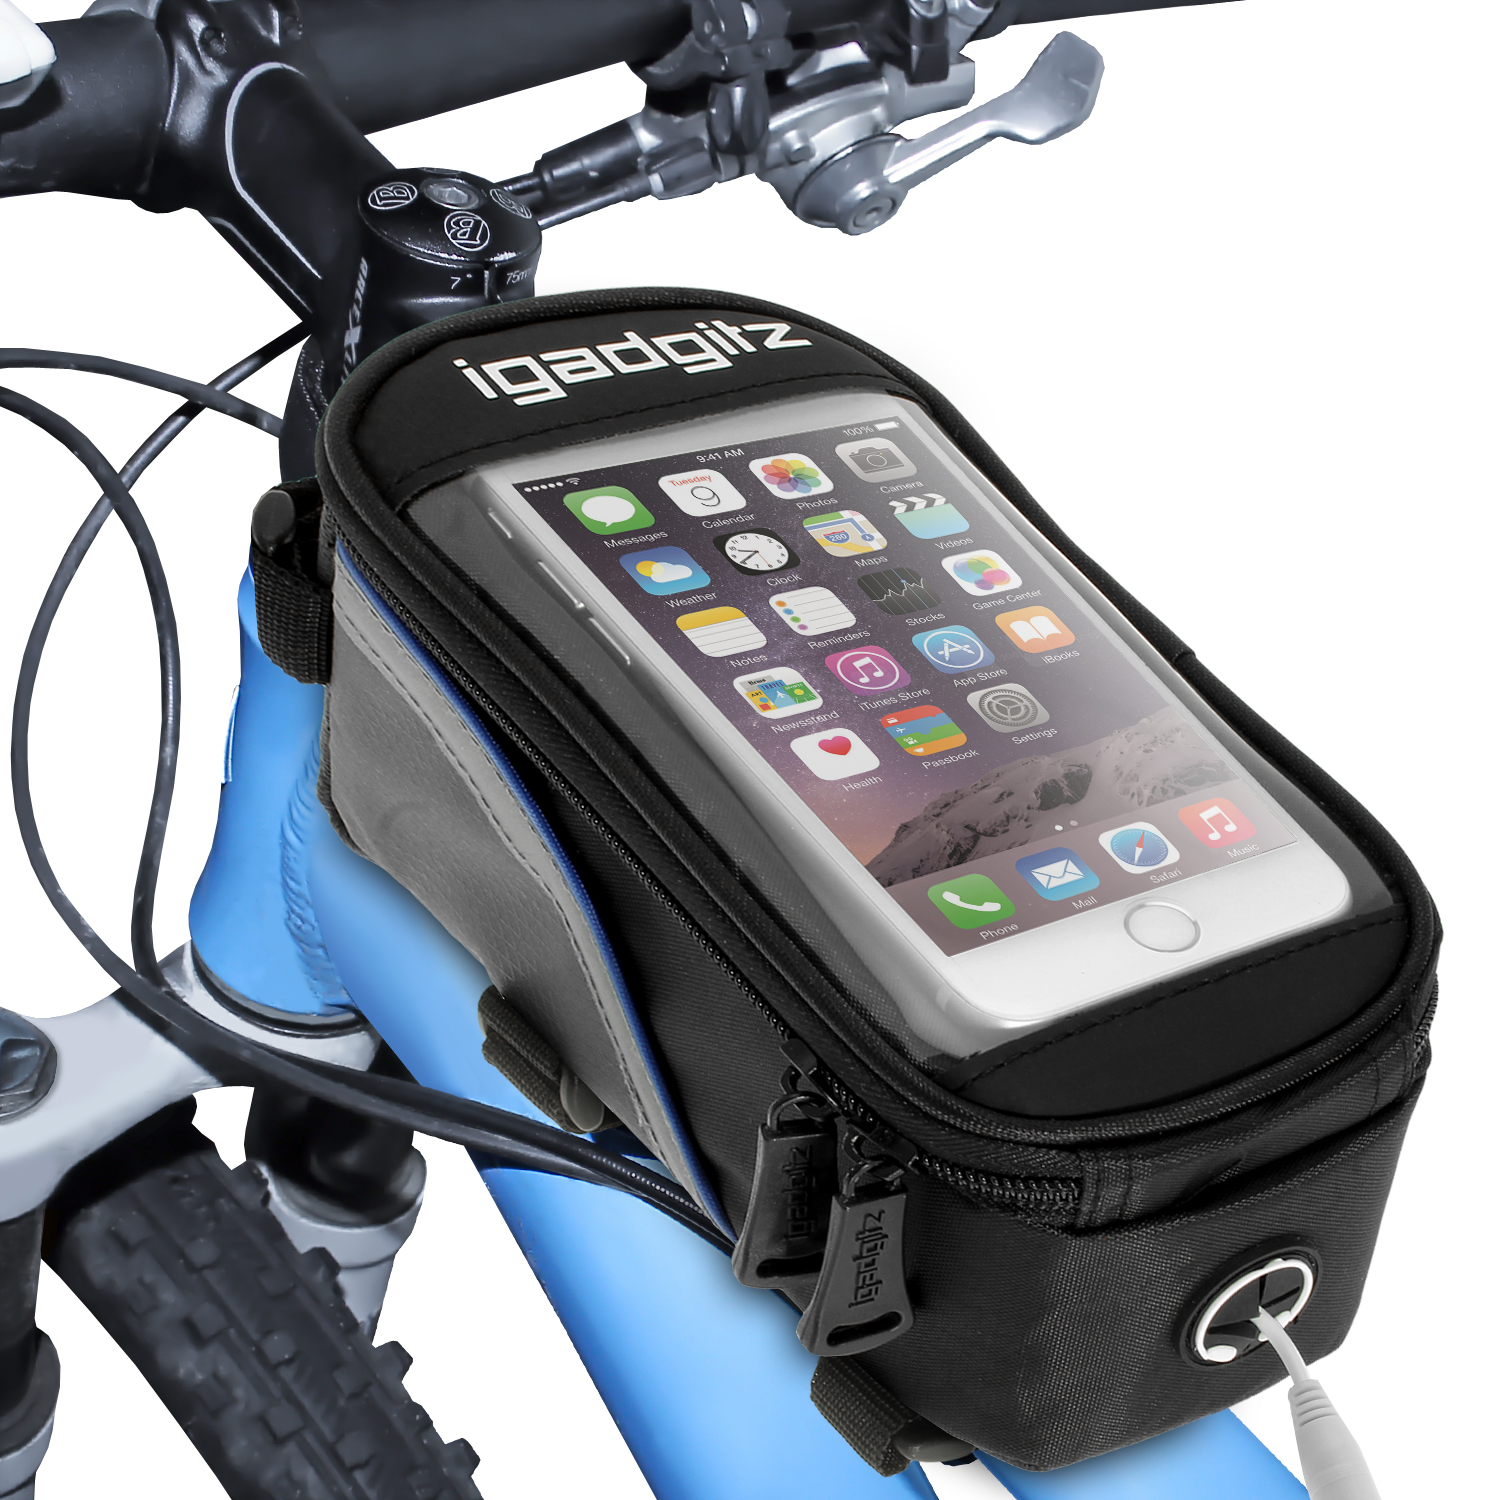 iGadgitz Reflective Water Resistant Front Top Tube Pannier Bike Frame Storage Bag with Phone iPod  sc 1 st  iGadgitz & iGadgitz Reflective Water Resistant Front Top Tube Pannier Bike ...